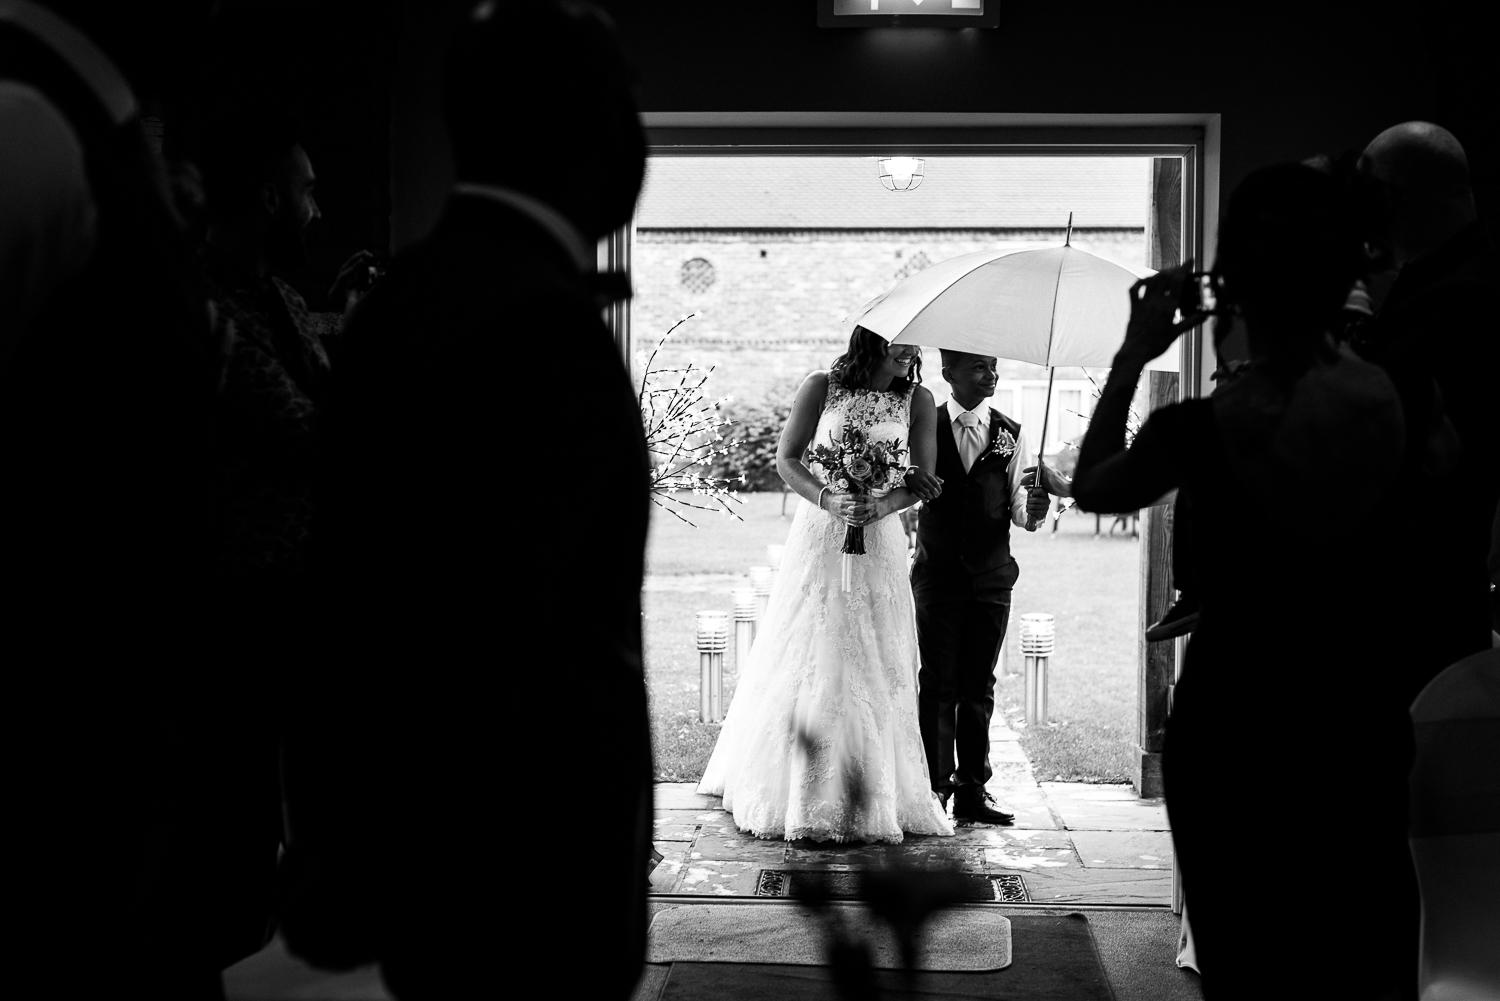 Wet Wedding - Rainy Wedding - Staffordshire Wedding Photography at Slaters Country Inn - jenny Harper Photographher-39.jpg